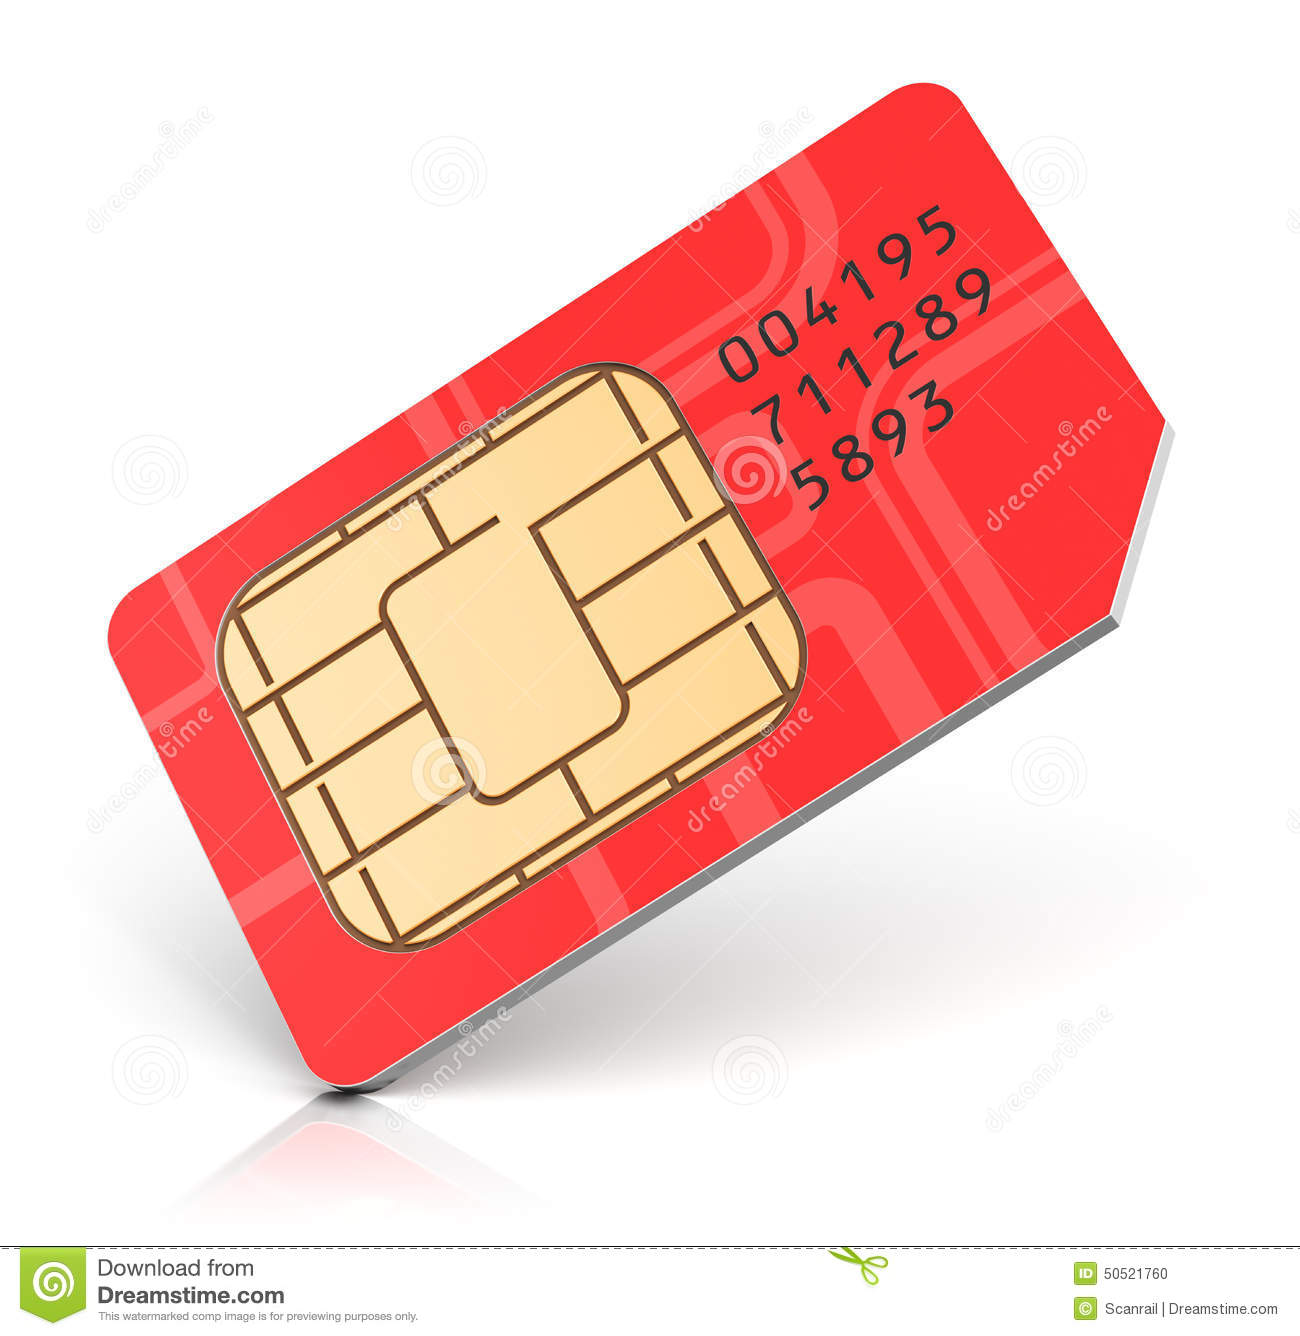 how to read a sim card